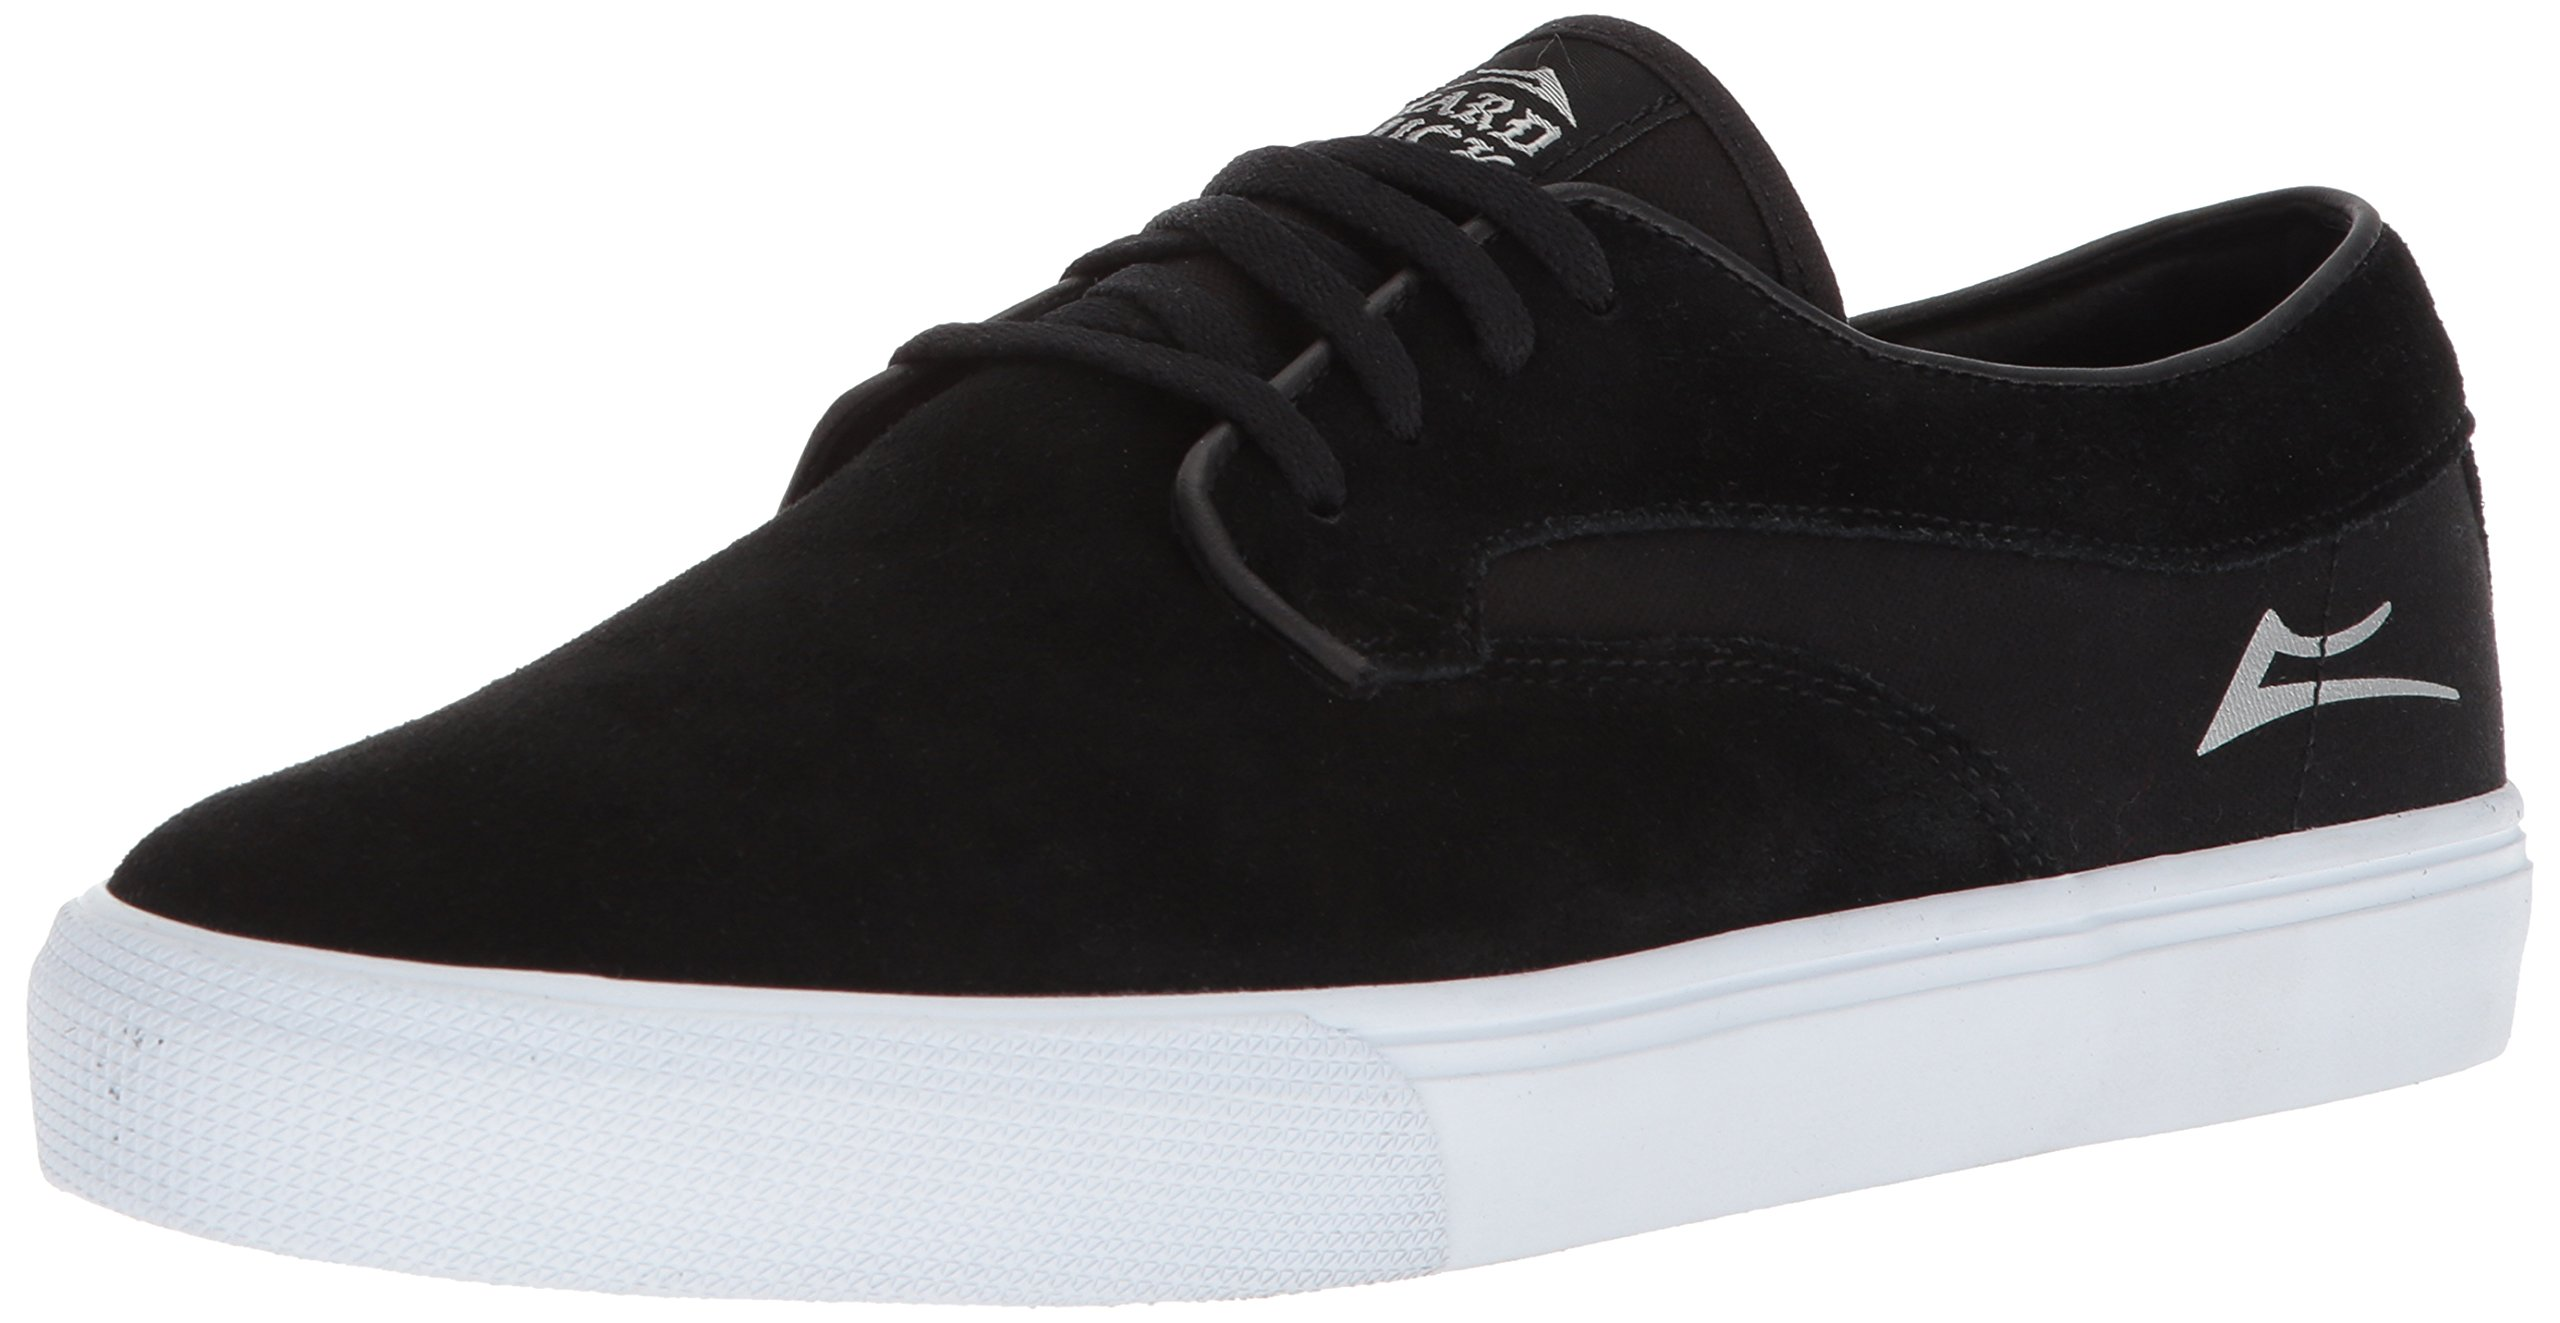 Lakai Riley, Black Suede, 10 Medium US by Lakai